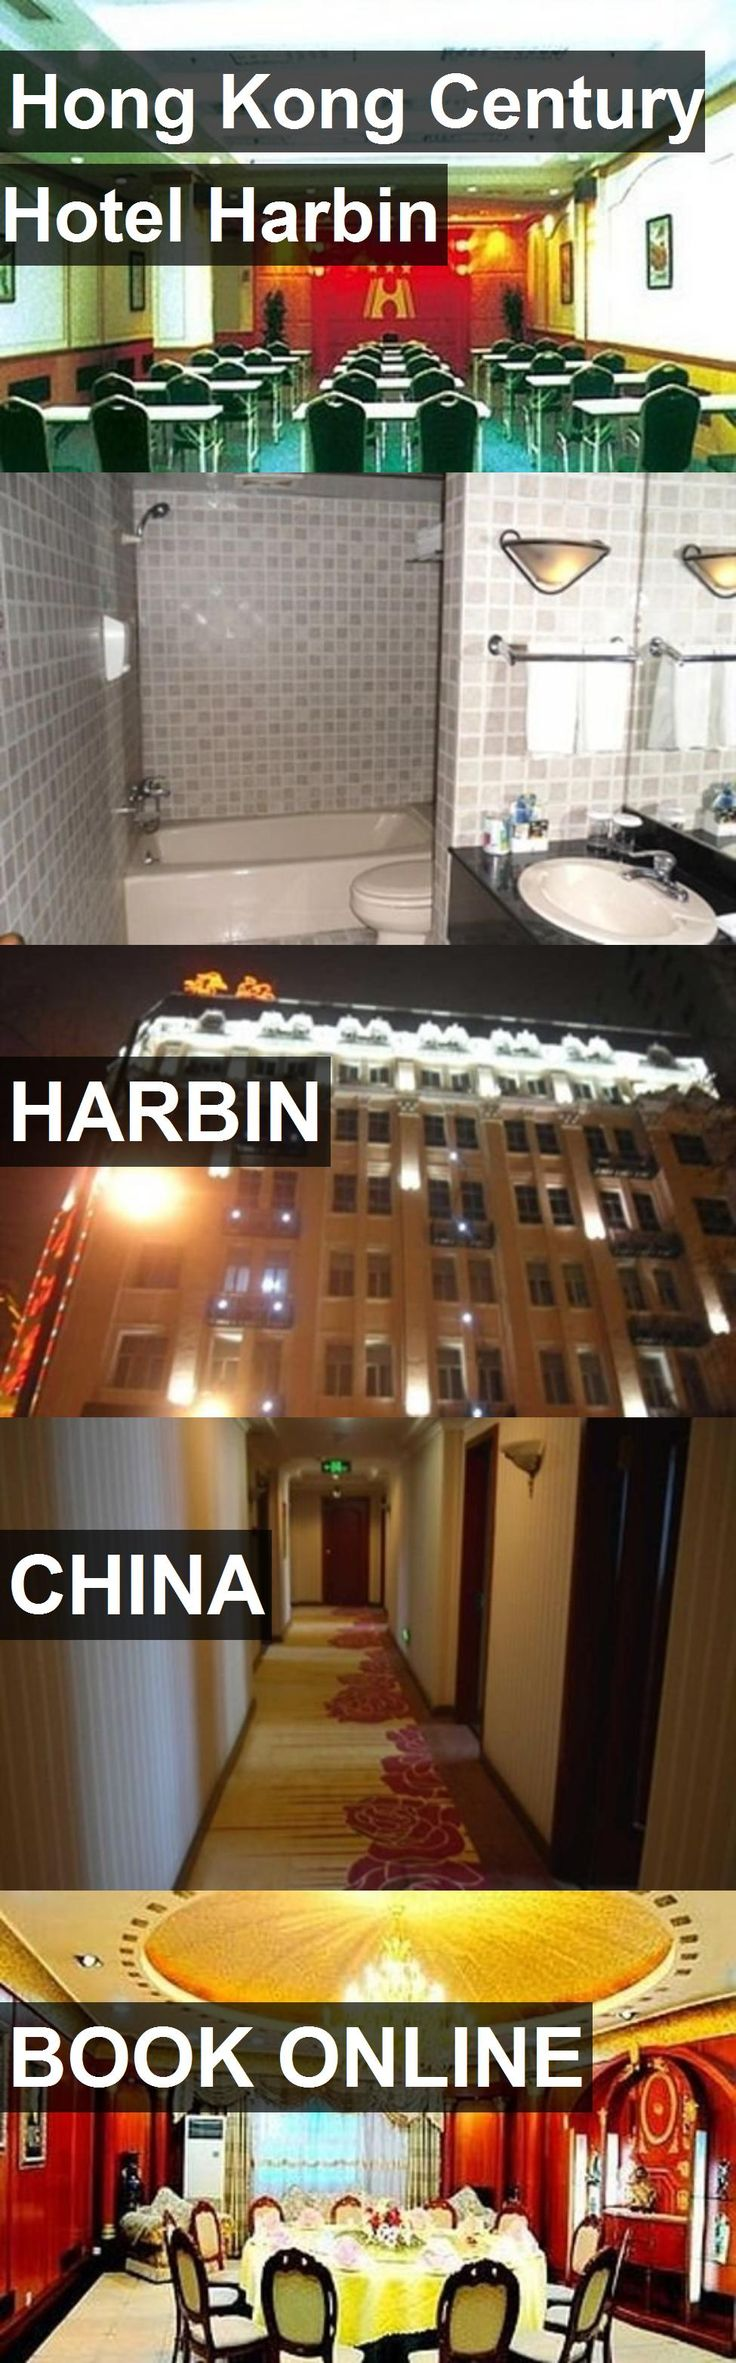 Hong Kong Century Hotel Harbin in Harbin, China. For more information, photos, reviews and best prices please follow the link. #China #Harbin #travel #vacation #hotel